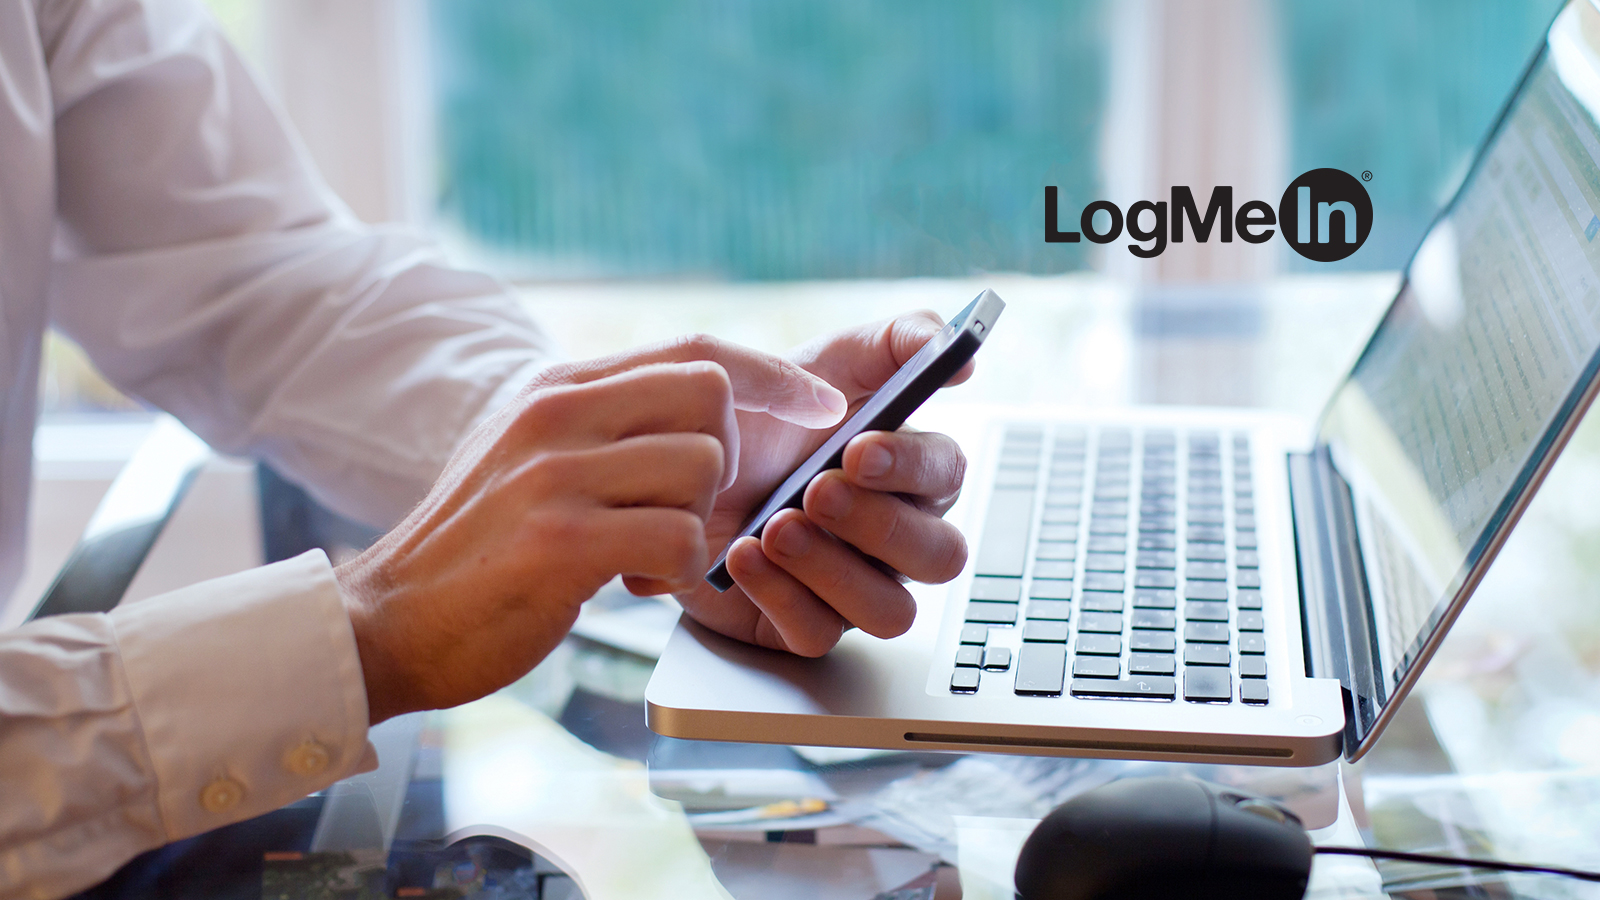 LogMeIn Unveils Secure Federated Login to LastPass with